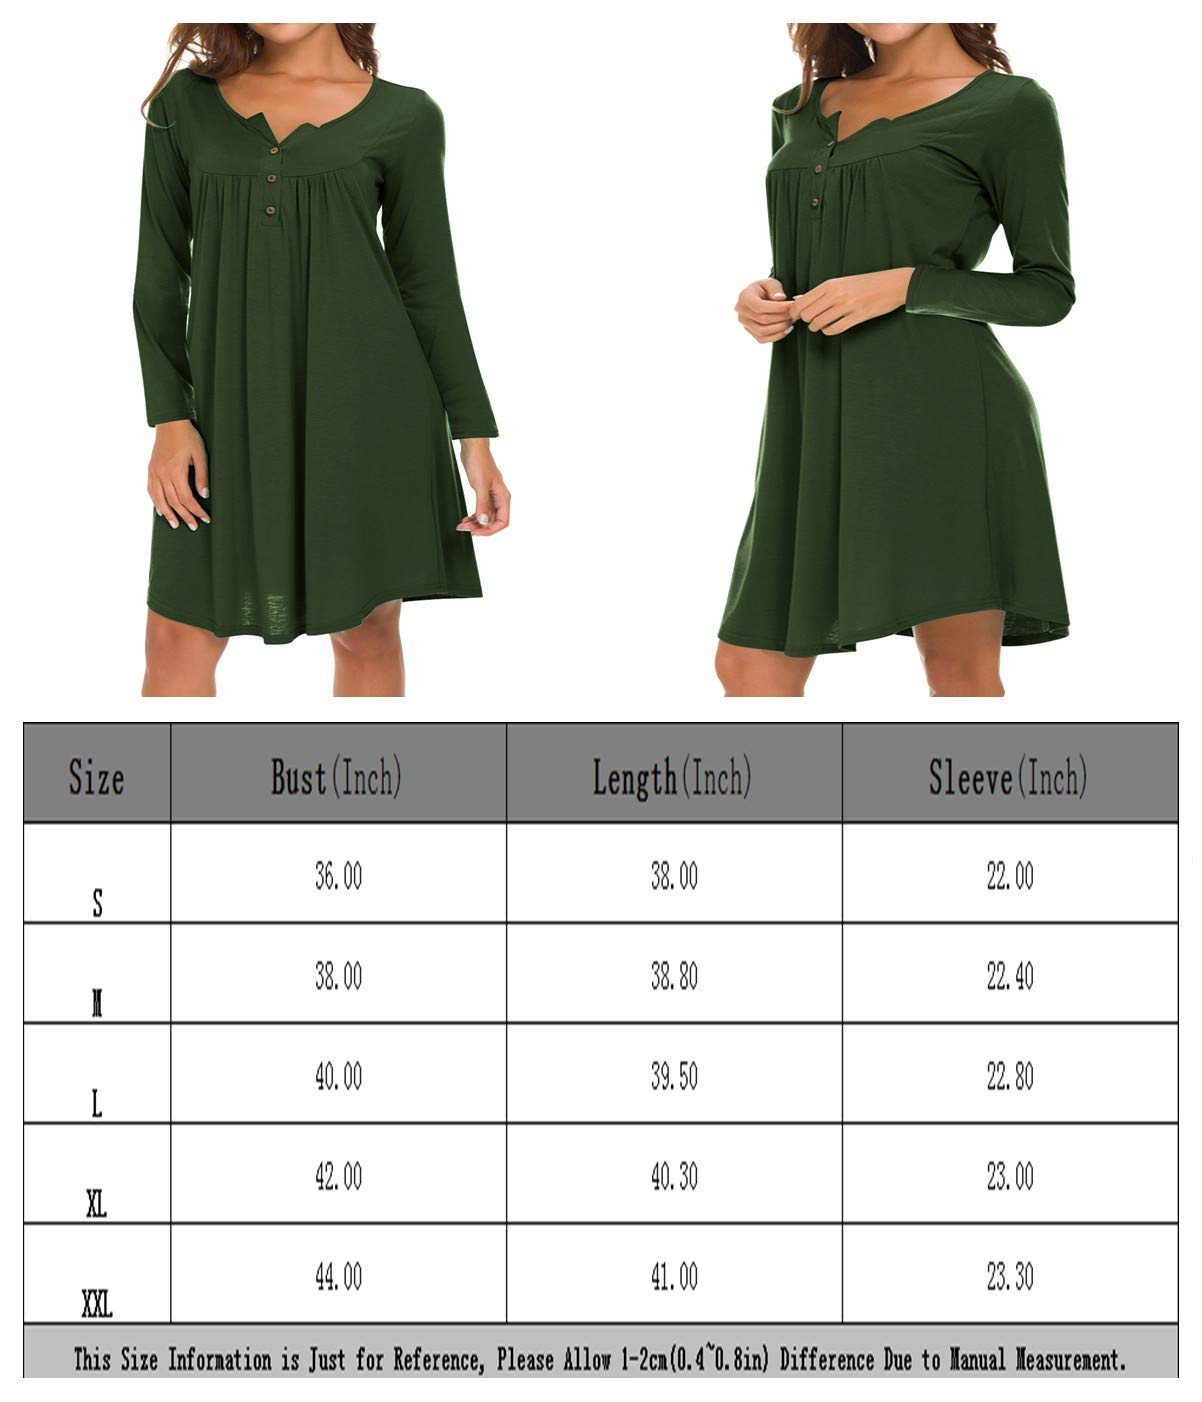 Eanklosco Long Sleeve Swing Dress Women Casual Loose Henley Shirt Dress (Army Green, S)